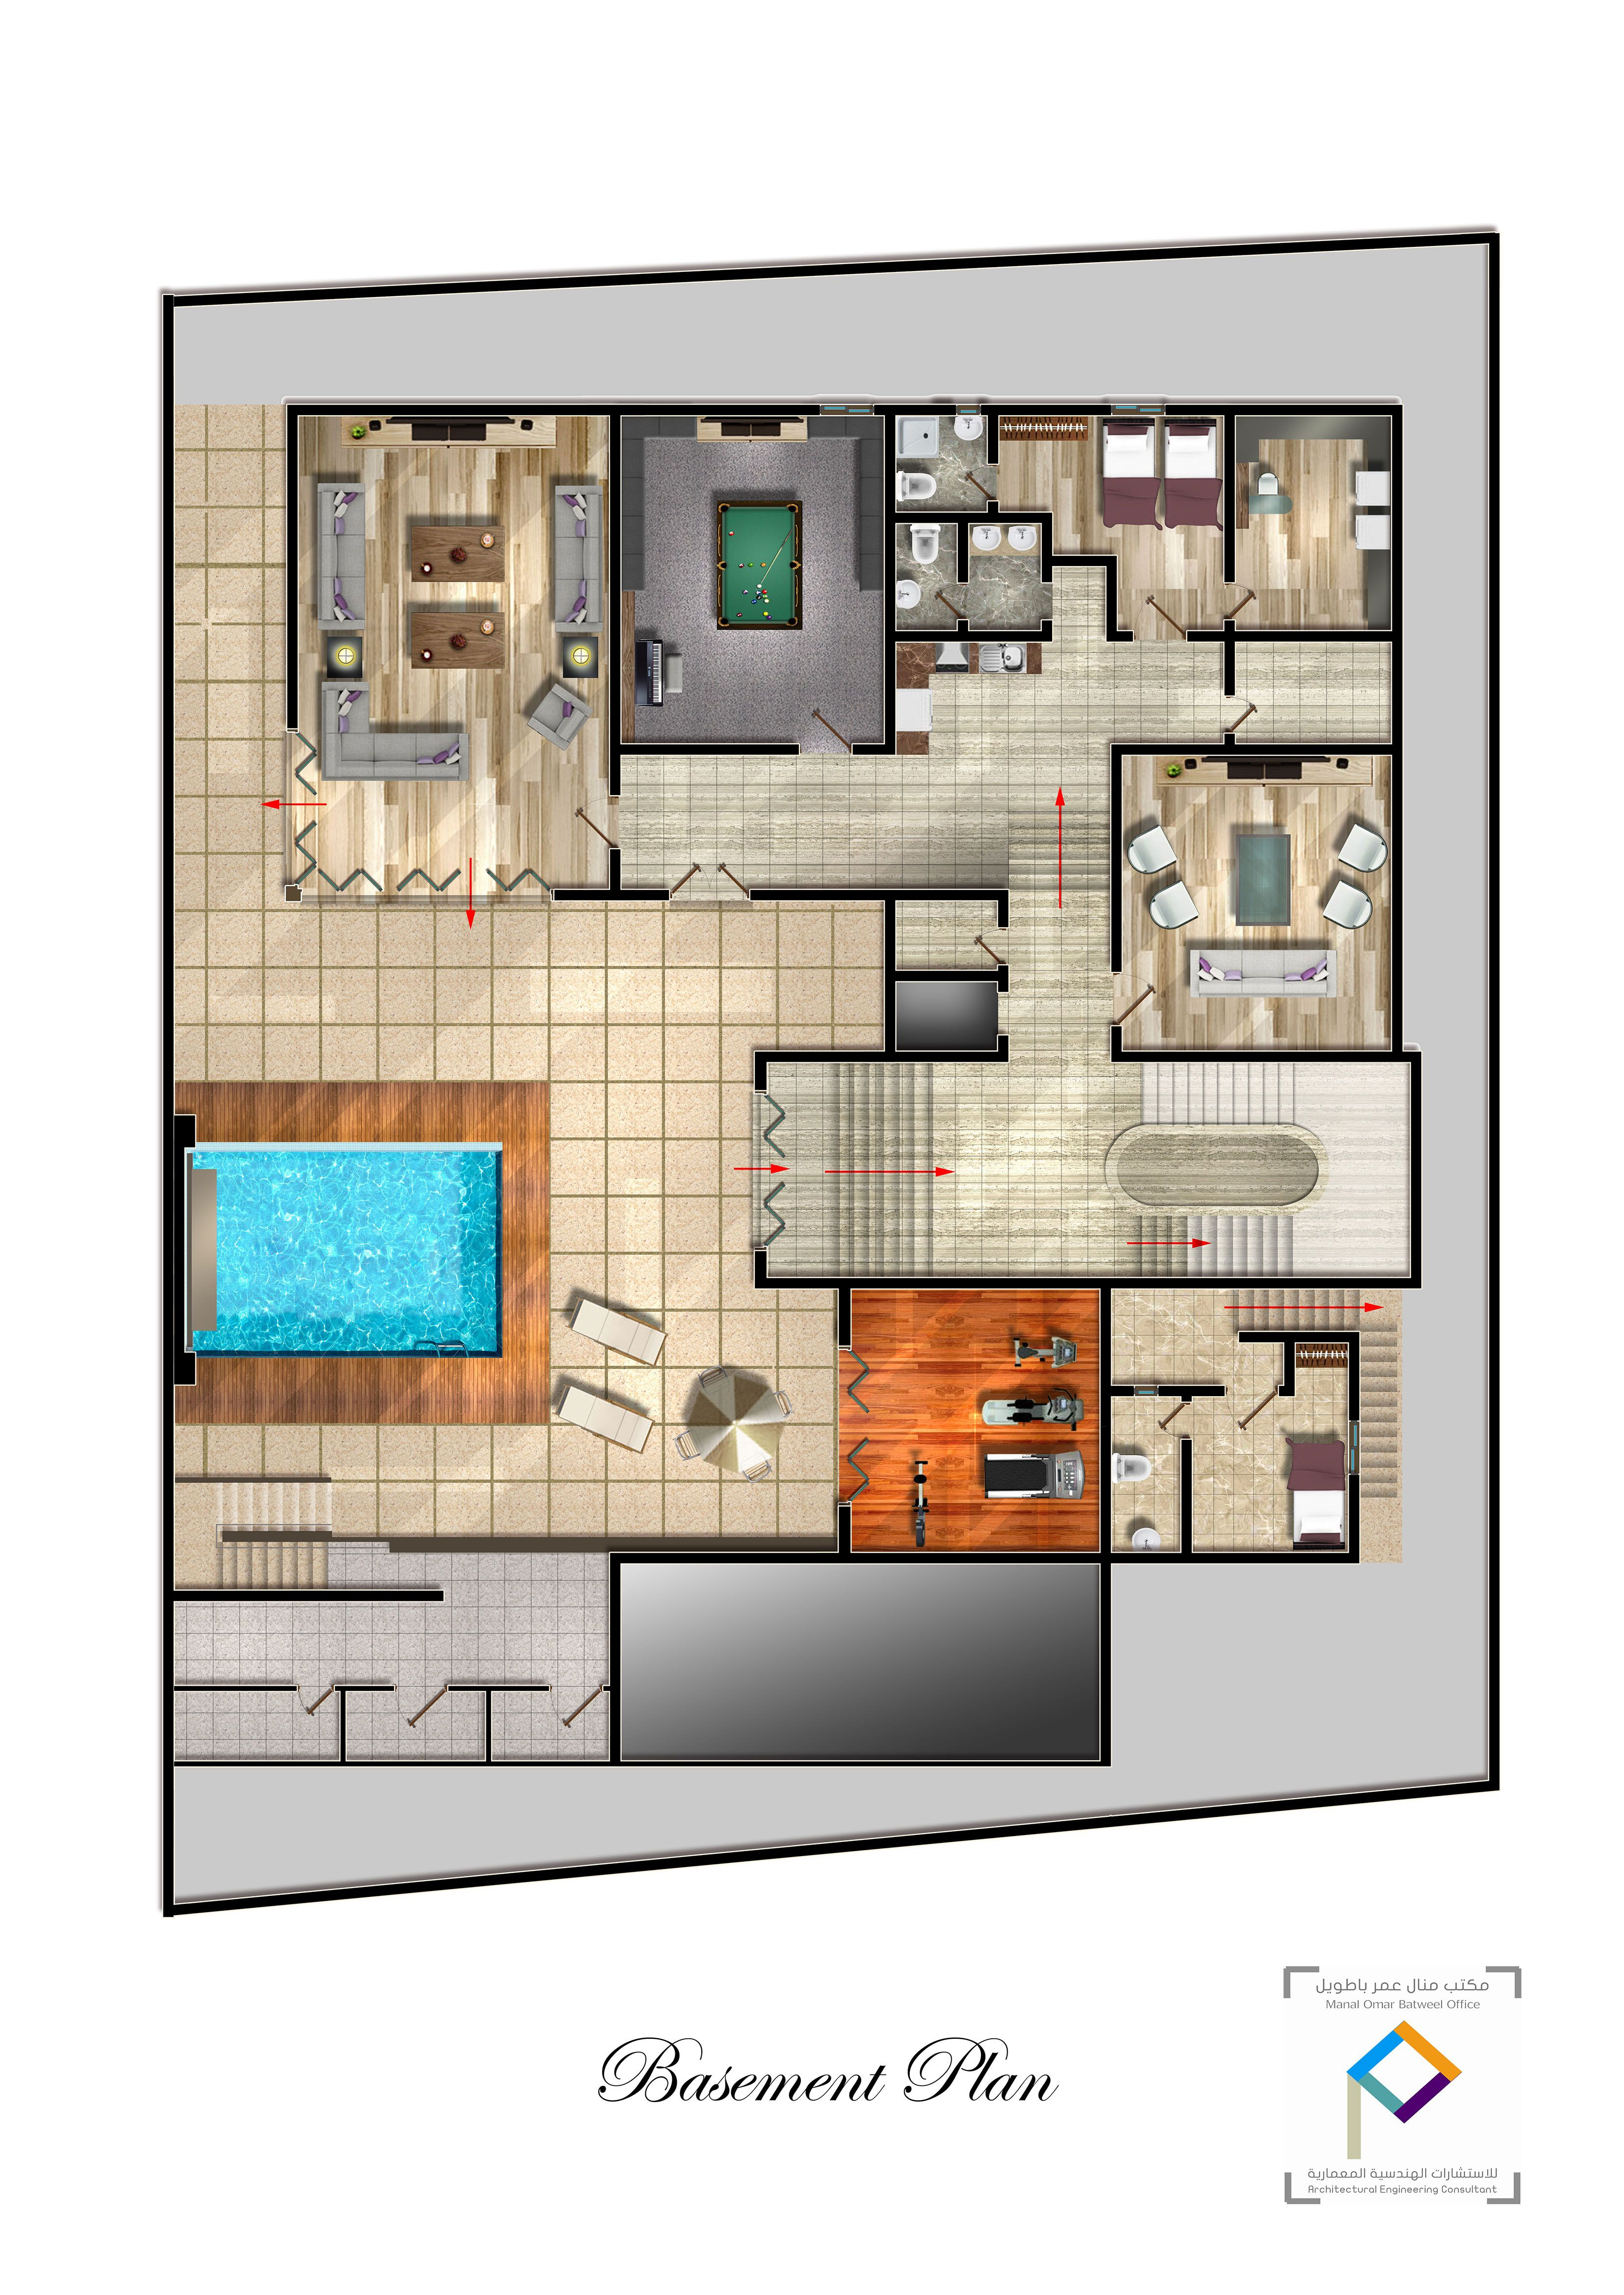 Basement Floor Plan Swimming Pool Modern House Plans Pool House Plans House Flooring